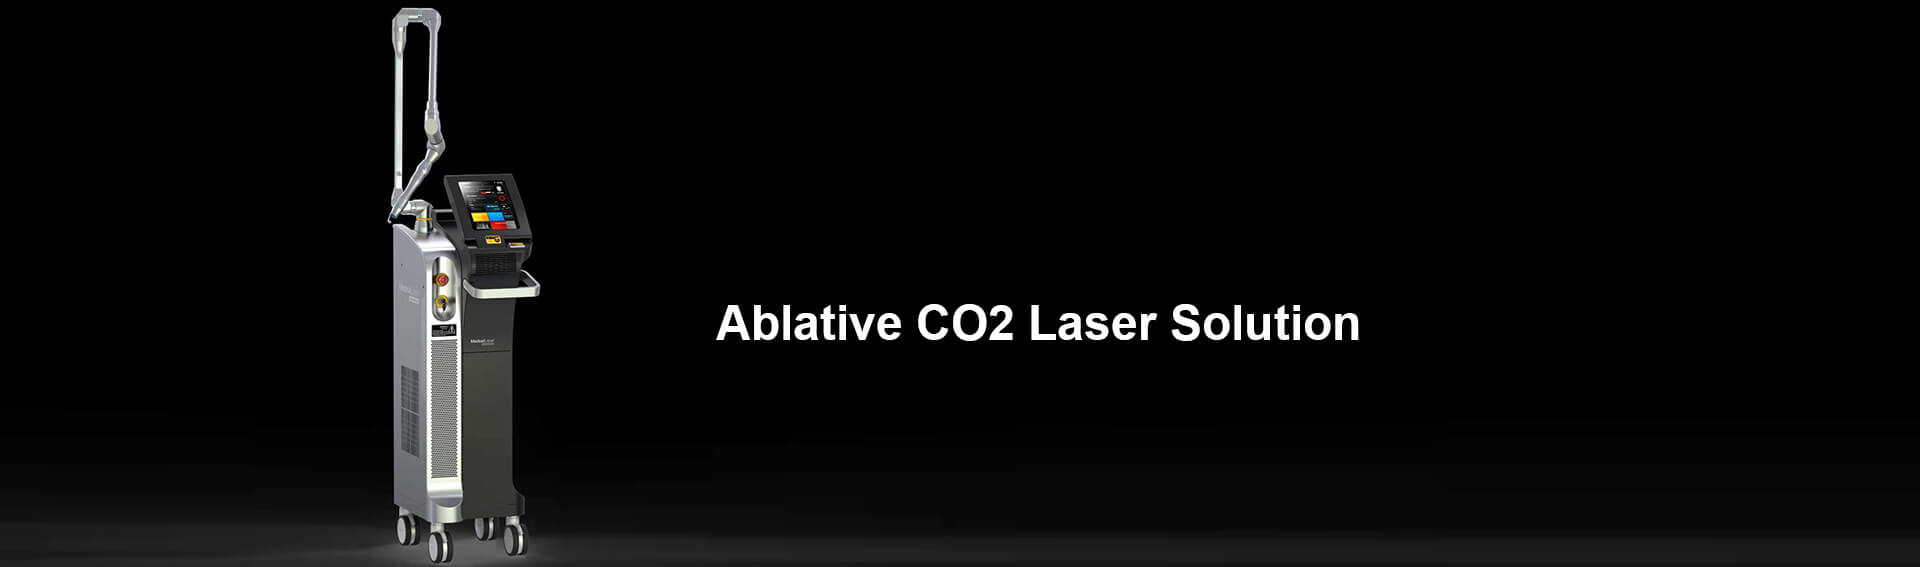 Ablative CO2 Laser Solution